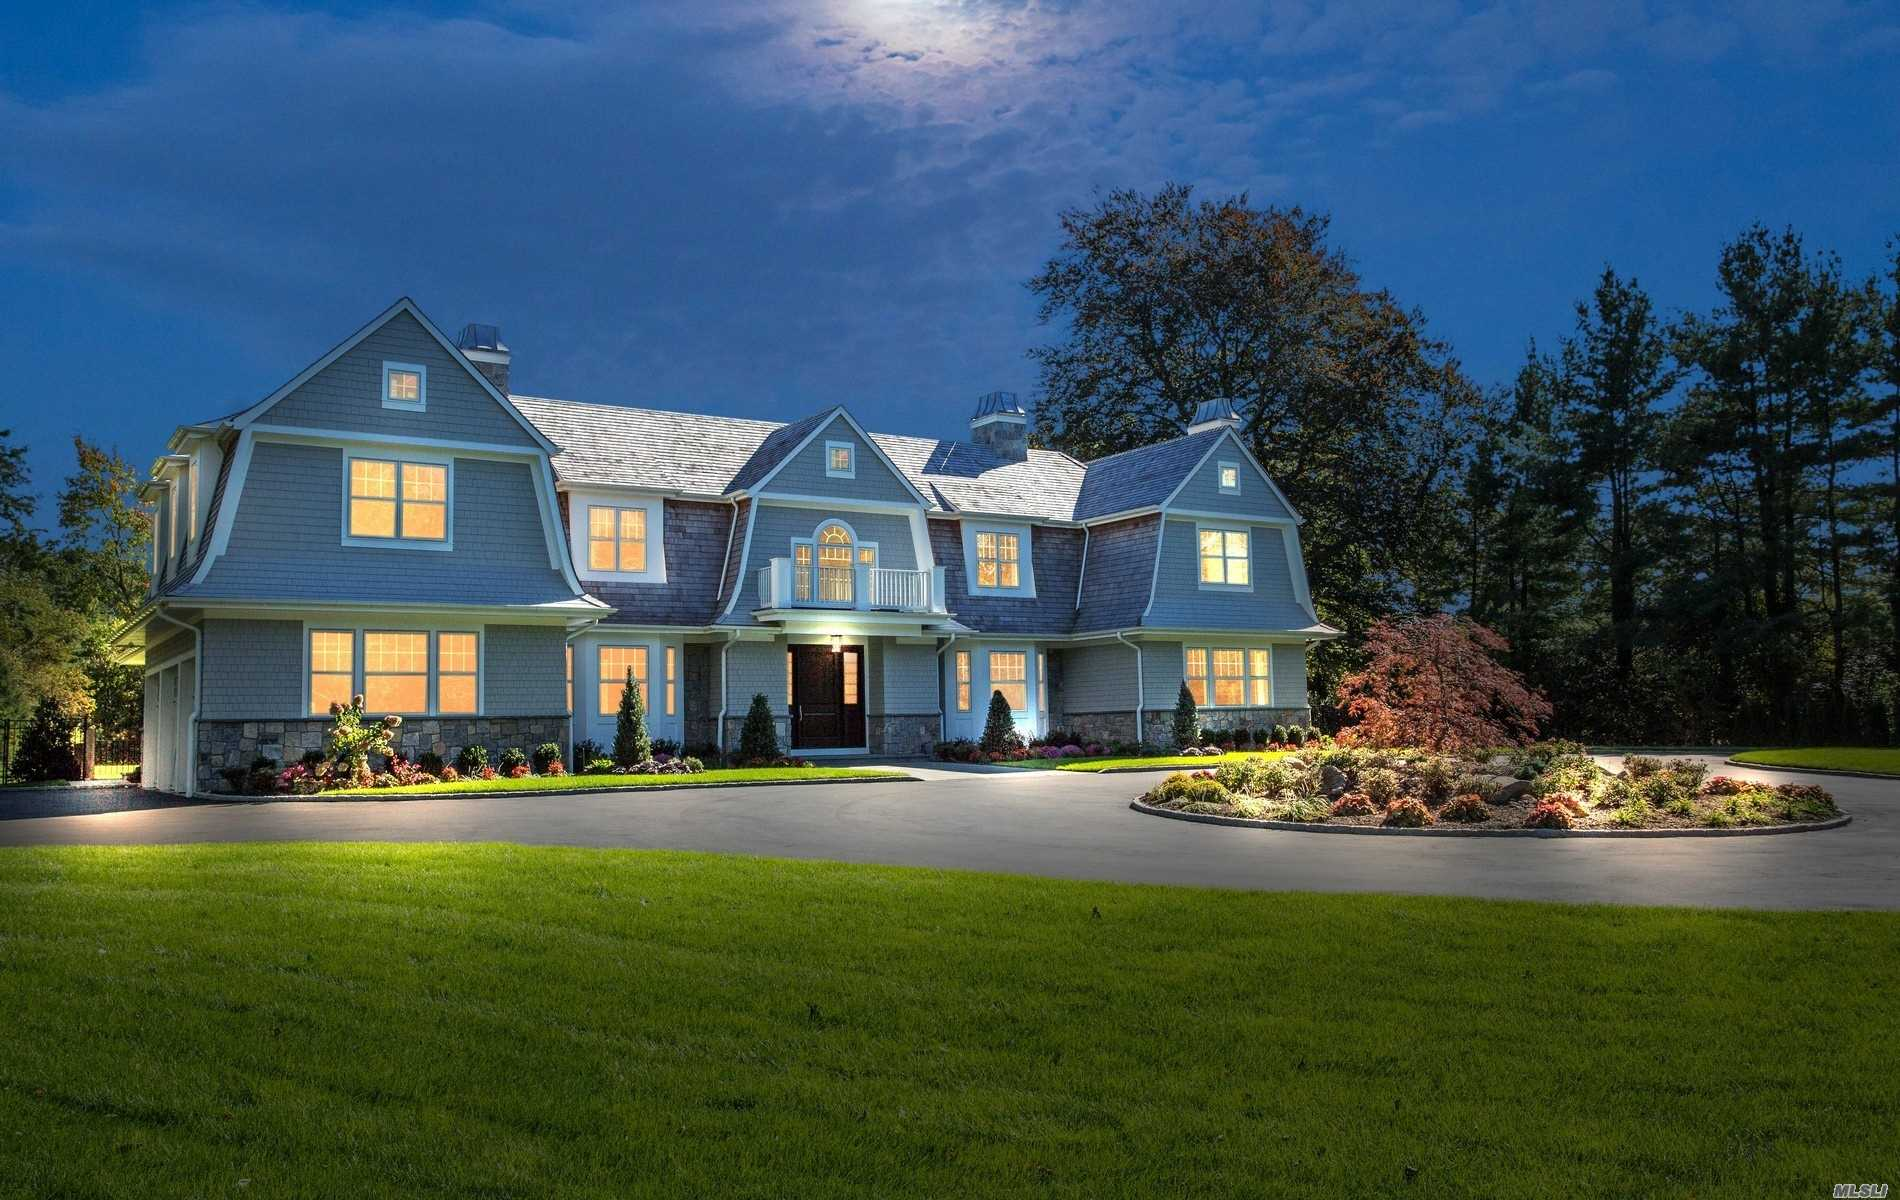 Unparalleled 6, 600 Sq.Ft New Construction.In The Prestigious Vill Of Old Westbury.Cedar & Stone Hampton Style Col Built By Noted Gold Coast Builder.2 Mag.Flat, Prof Landscaped Acres W/In Ground Heated Pool.Transitional & Chic W/The Finest Materials, Designer Trim & Moldings, Formal Dr W/Coffered Ceilings.20Ft.Grand Entry Foyer, Chef's Gourmet Kitchen W/Commercial Grade Appliances, Master Suite W/Fpl, Sitting Rm, W-In Built In Closet & Radiant Heated Spa Bath East Williston (Wheatley) School District.